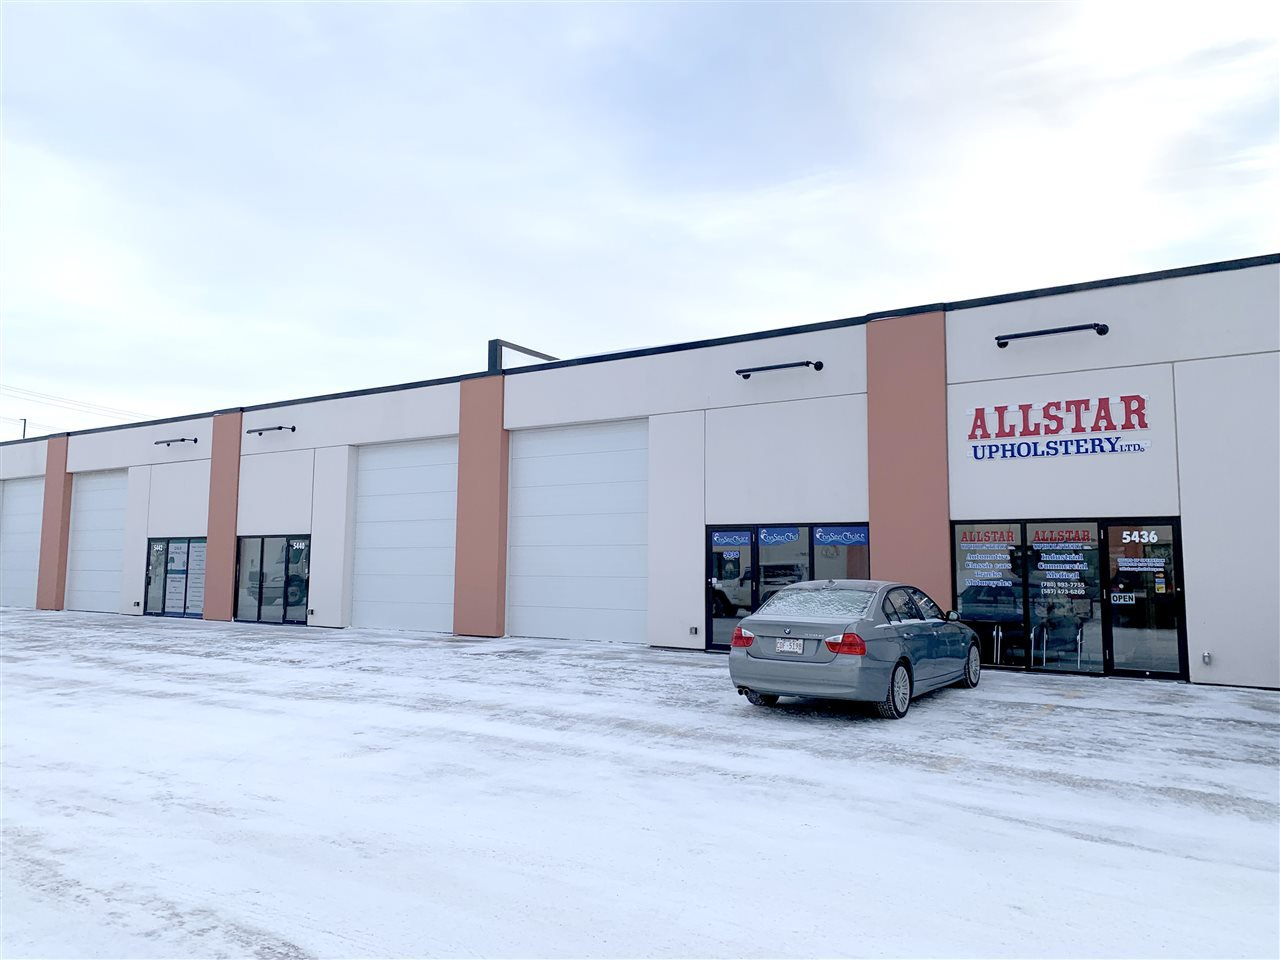 Main Photo: 5442 136 Avenue NW in Edmonton: Zone 02 Industrial for sale or lease : MLS®# E4188825